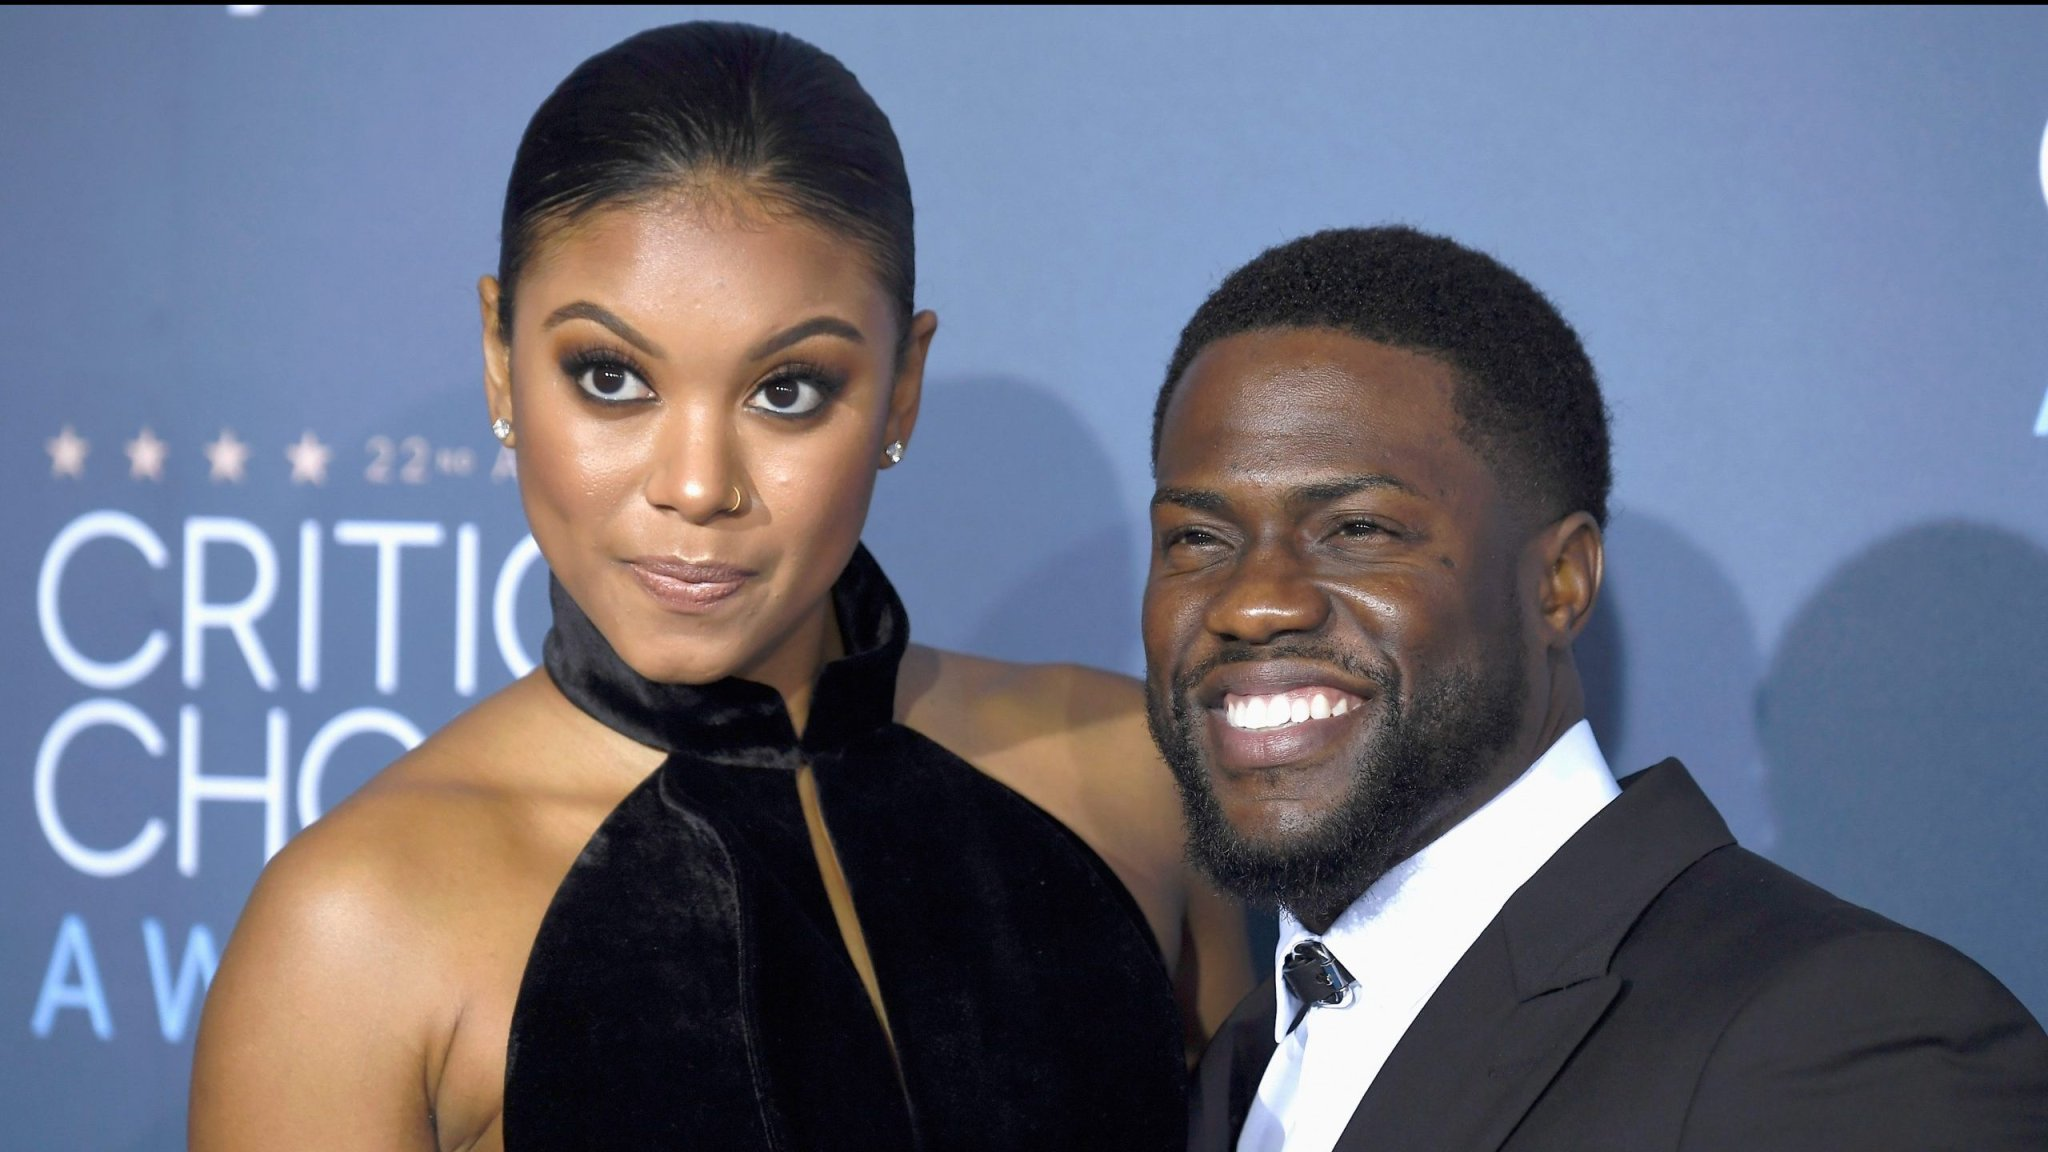 Kevin Hart says wife Eniko held him 'accountable' after cheating scandal